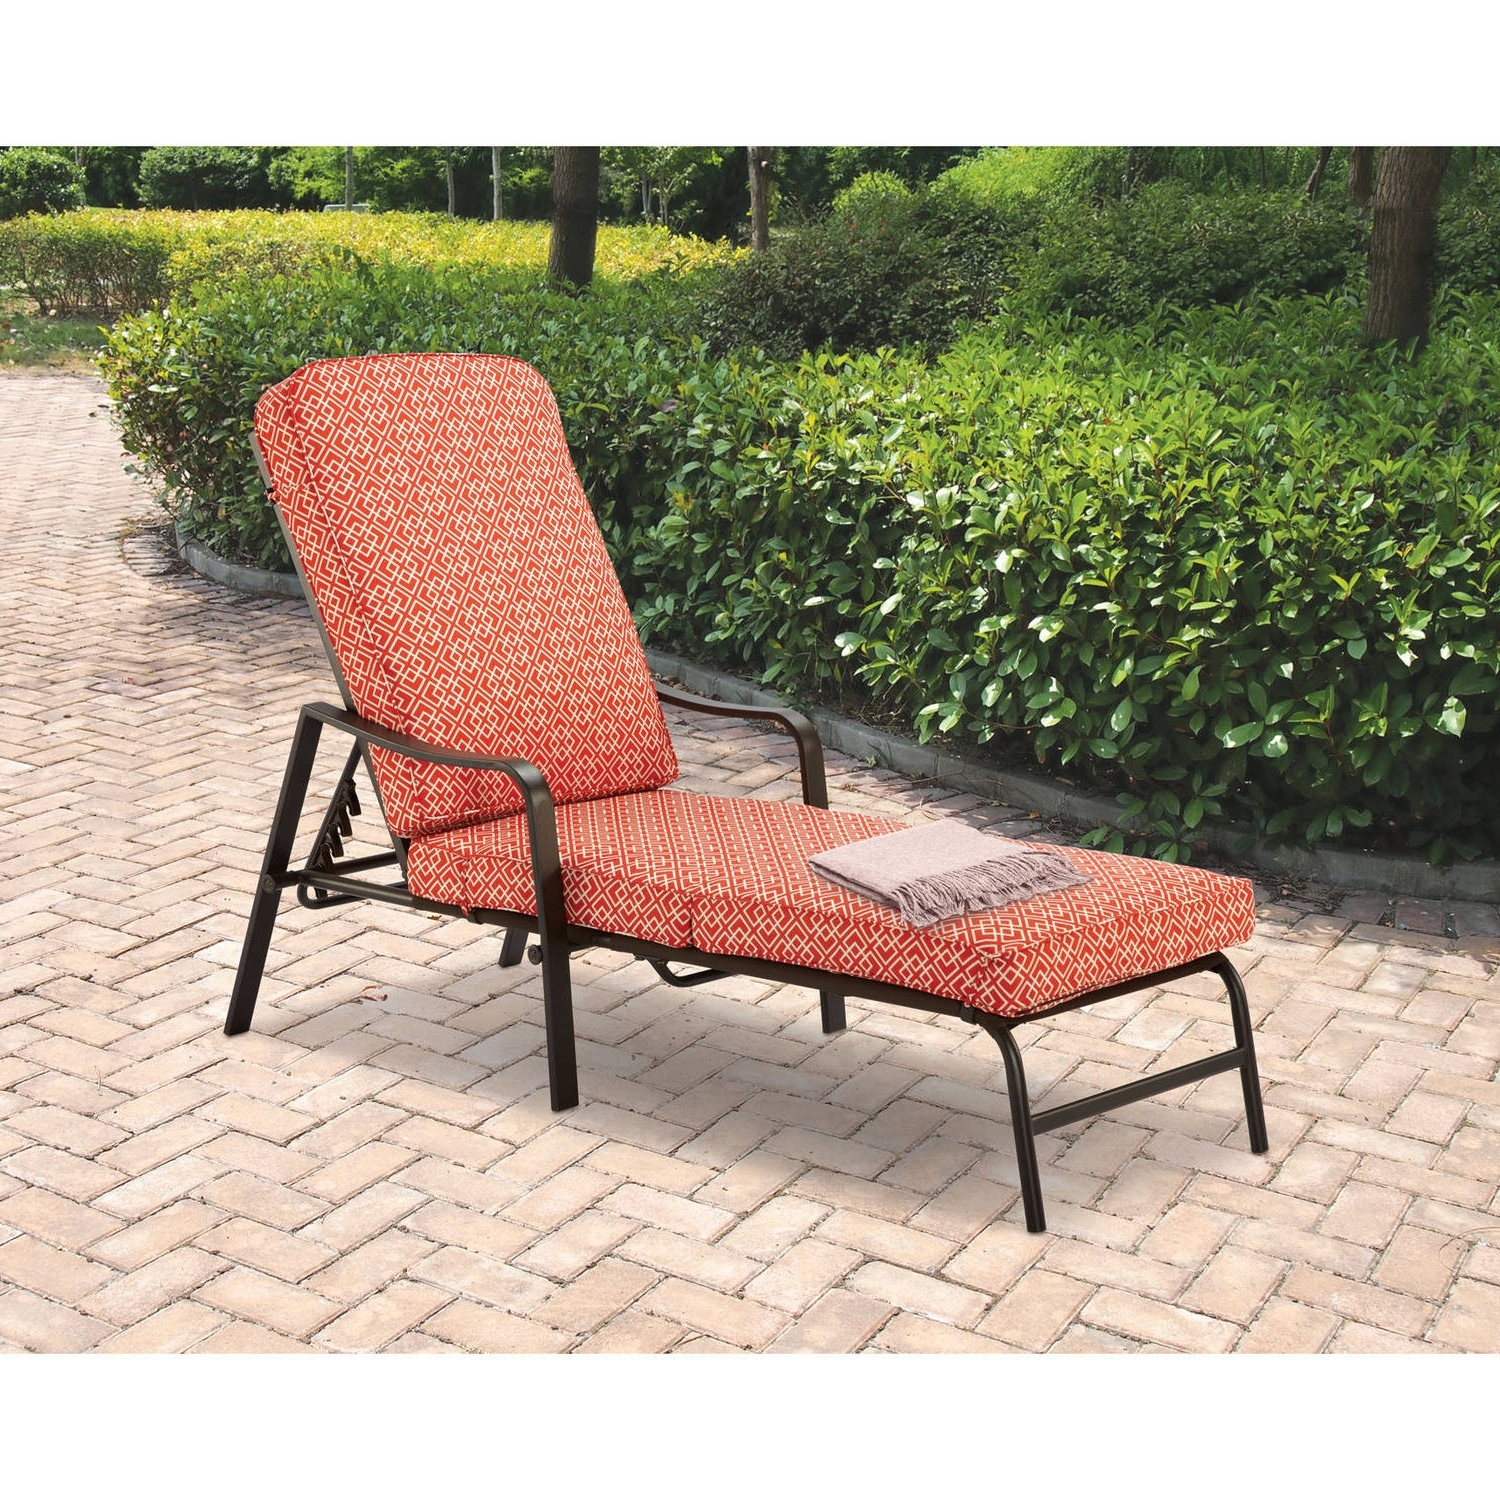 Mainstays Outdoor Chaise Lounge, Orange Geo Pattern – Walmart In 2017 Walmart Outdoor Chaise Lounges (View 6 of 15)